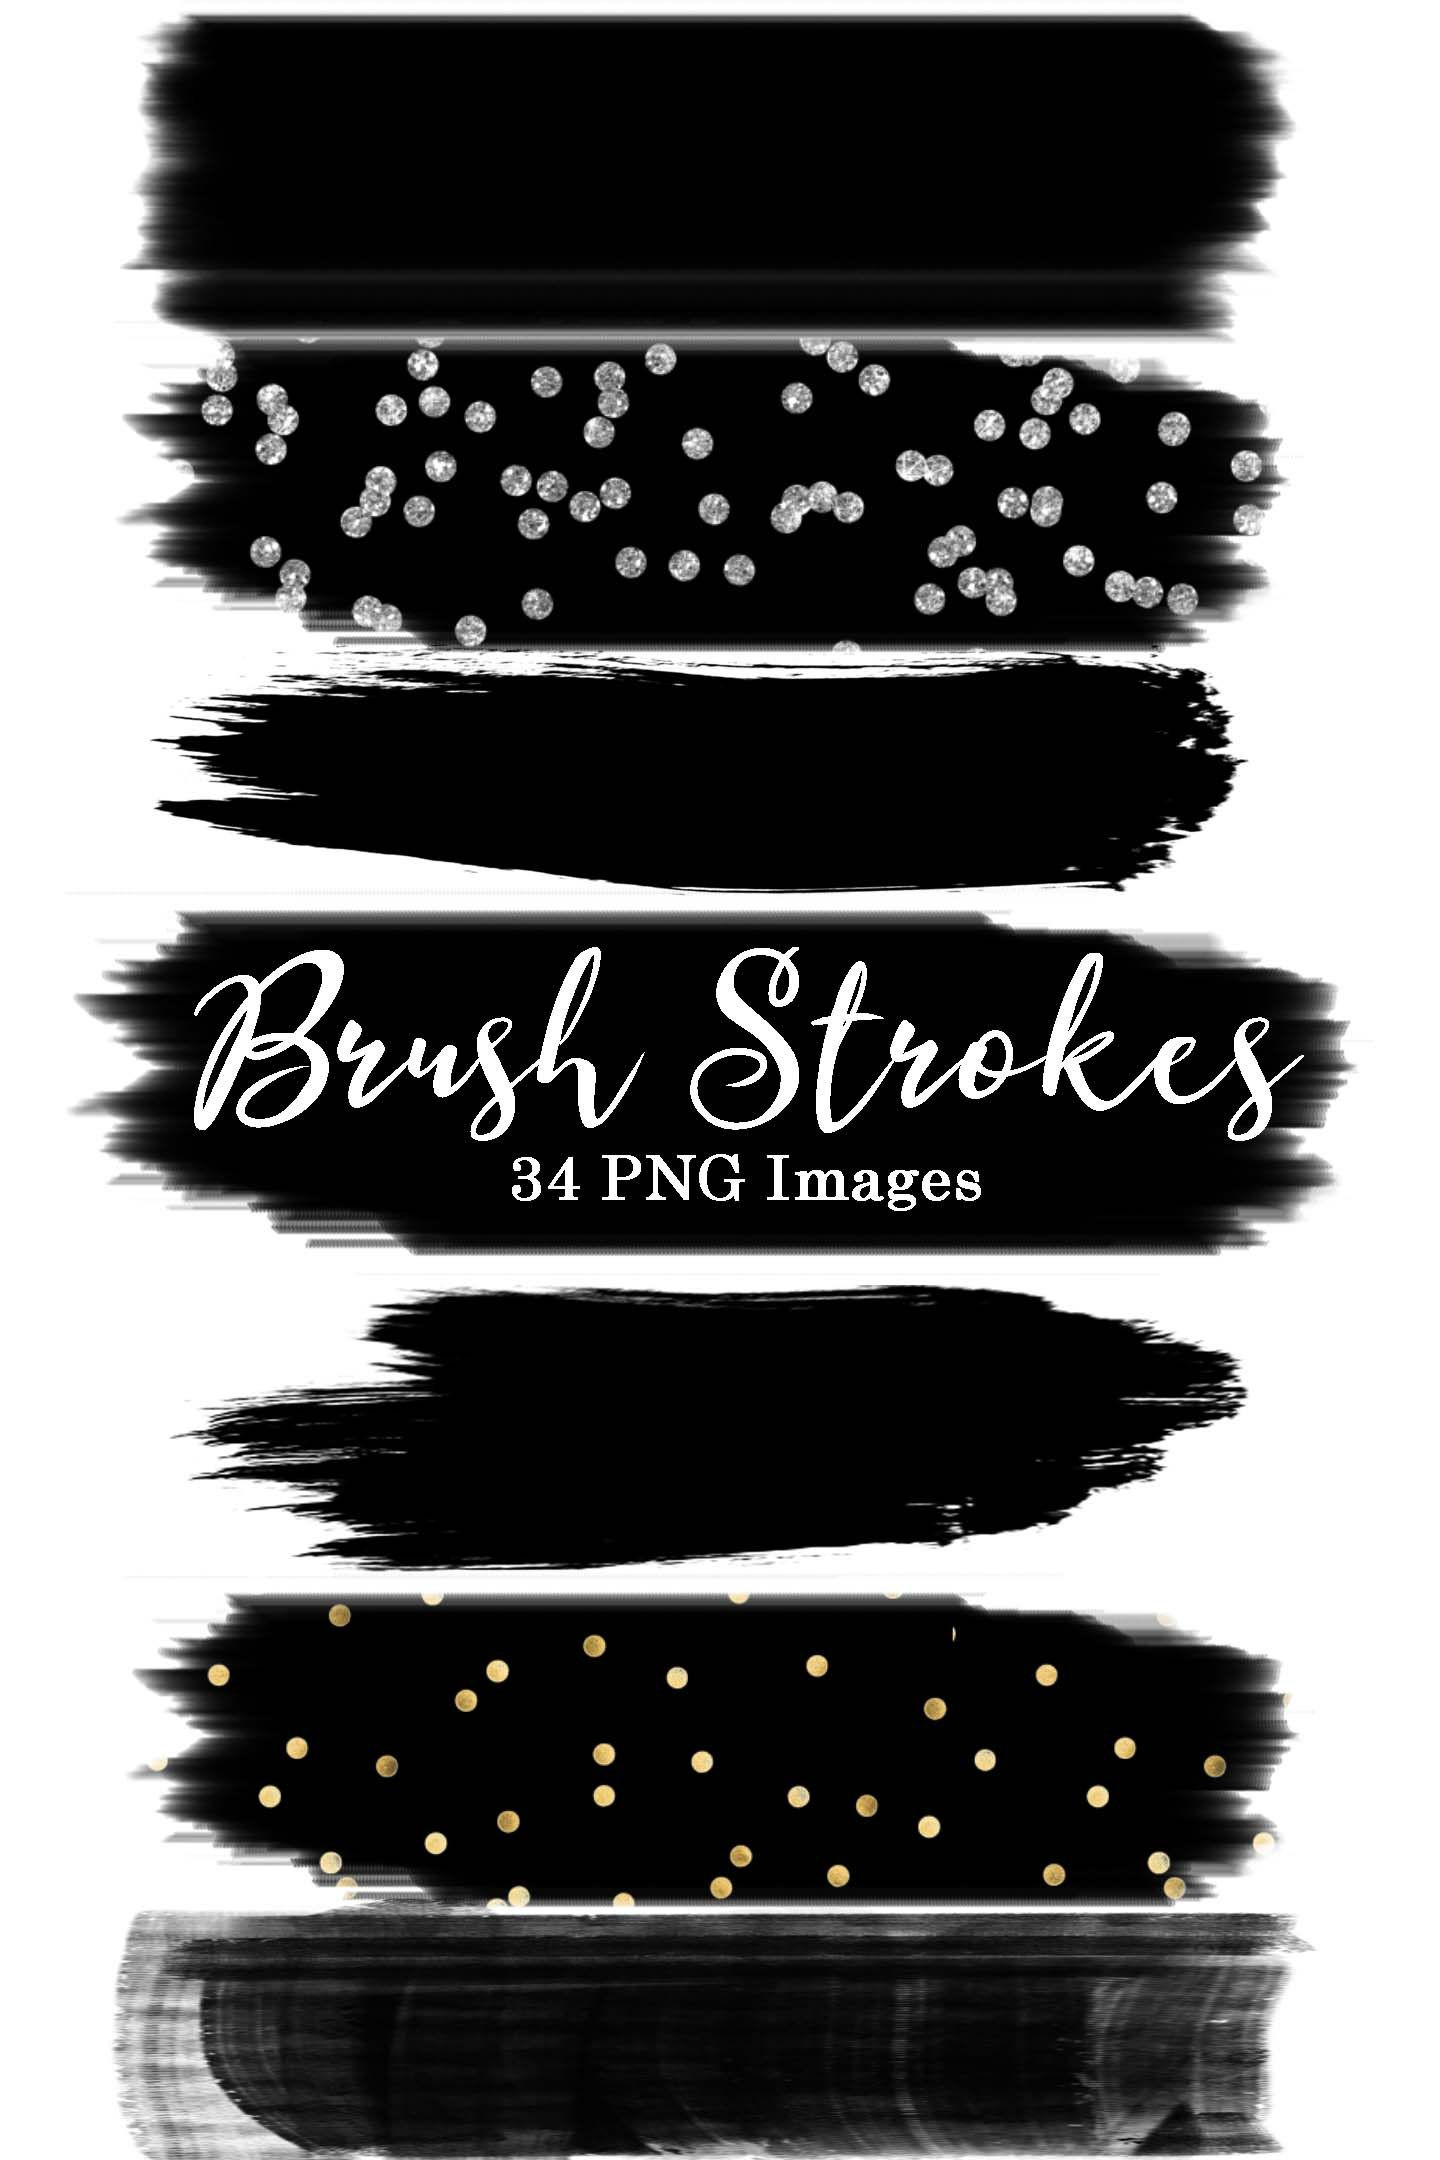 Minus Sign Png Grunge Brush Stroke Typography Free Image By Rawpixel Com Mind Brush Stroke Png Brush Strokes Night Sky Photos